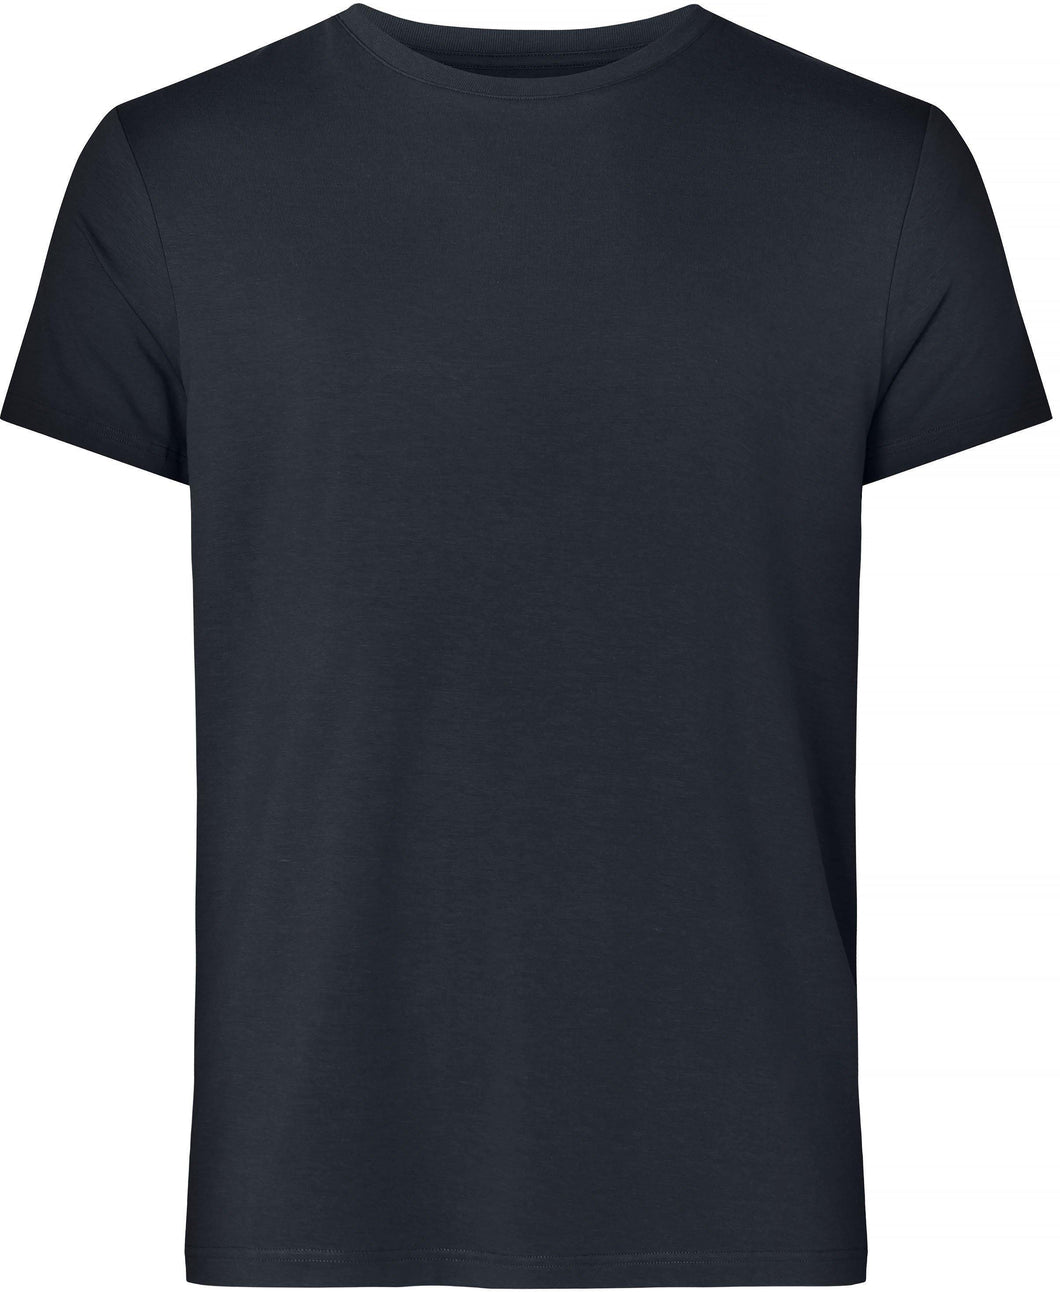 Bamboo T-shirt - Navy